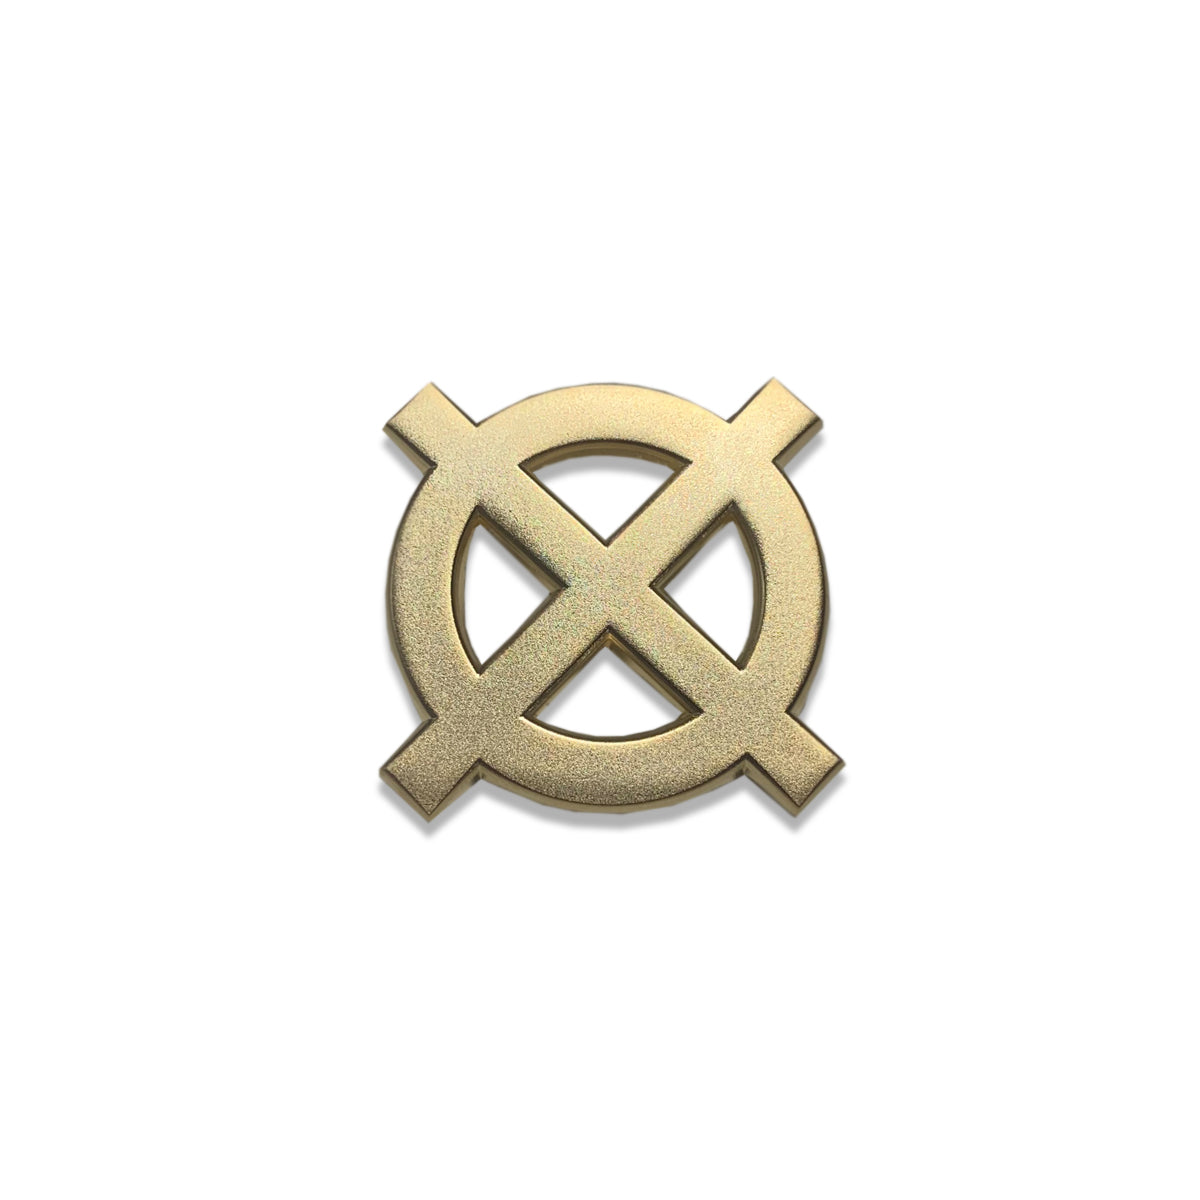 Kayzo OX pin - Gold